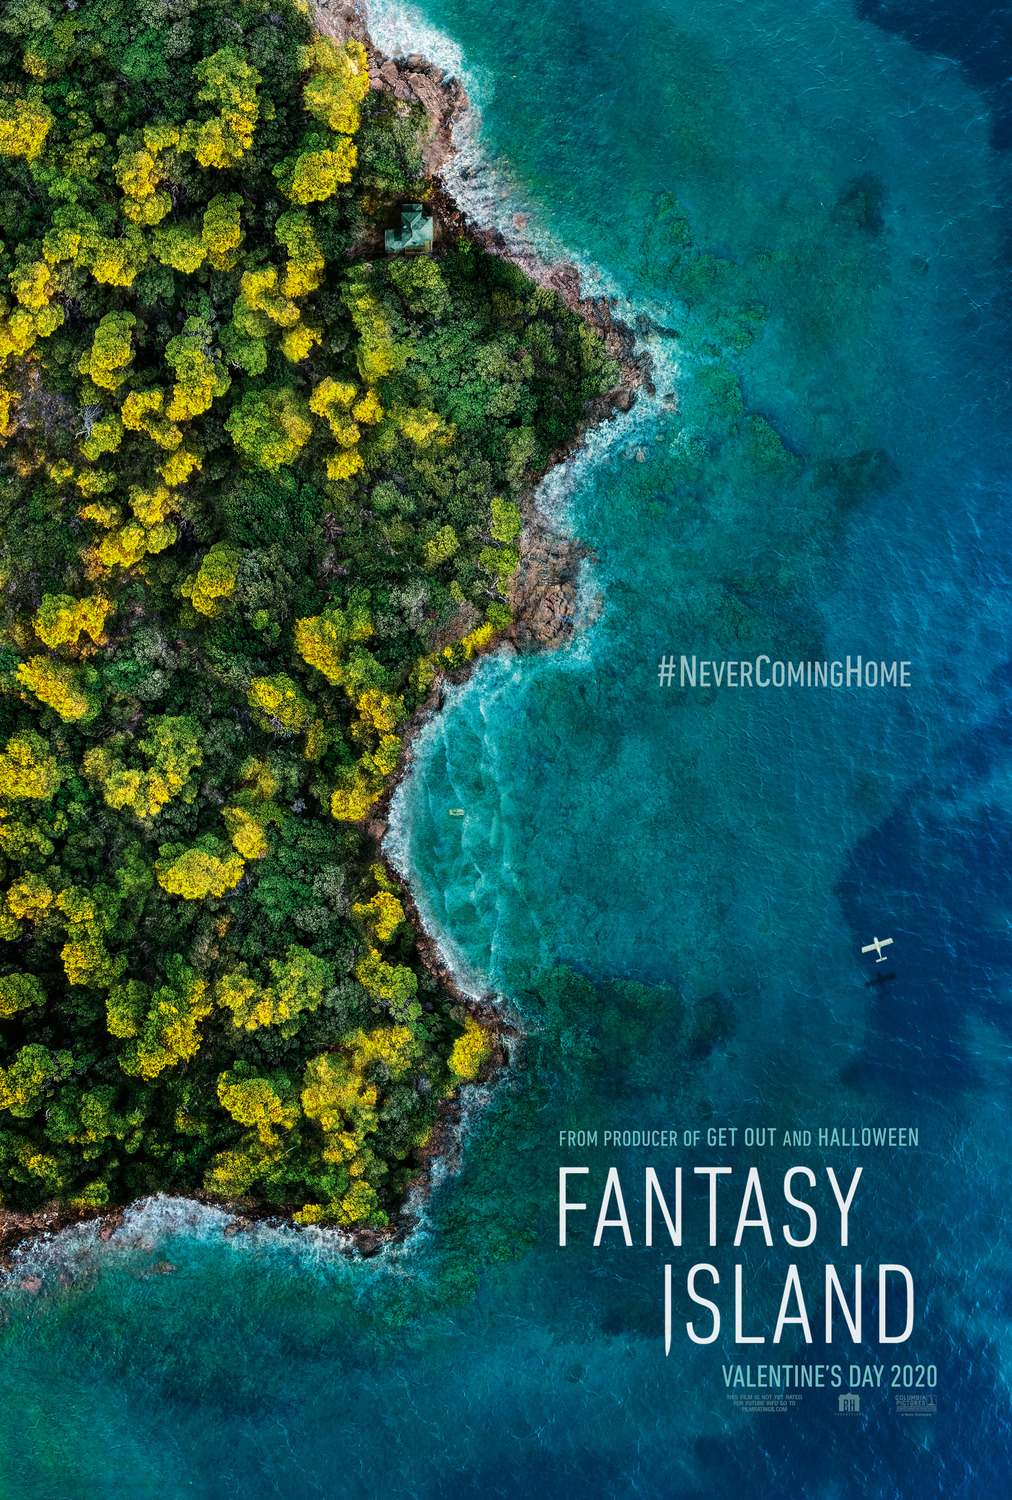 Halloween 2020 Anything After Credits Fantasy Island (2020)   Whats After The Credits? | The Definitive